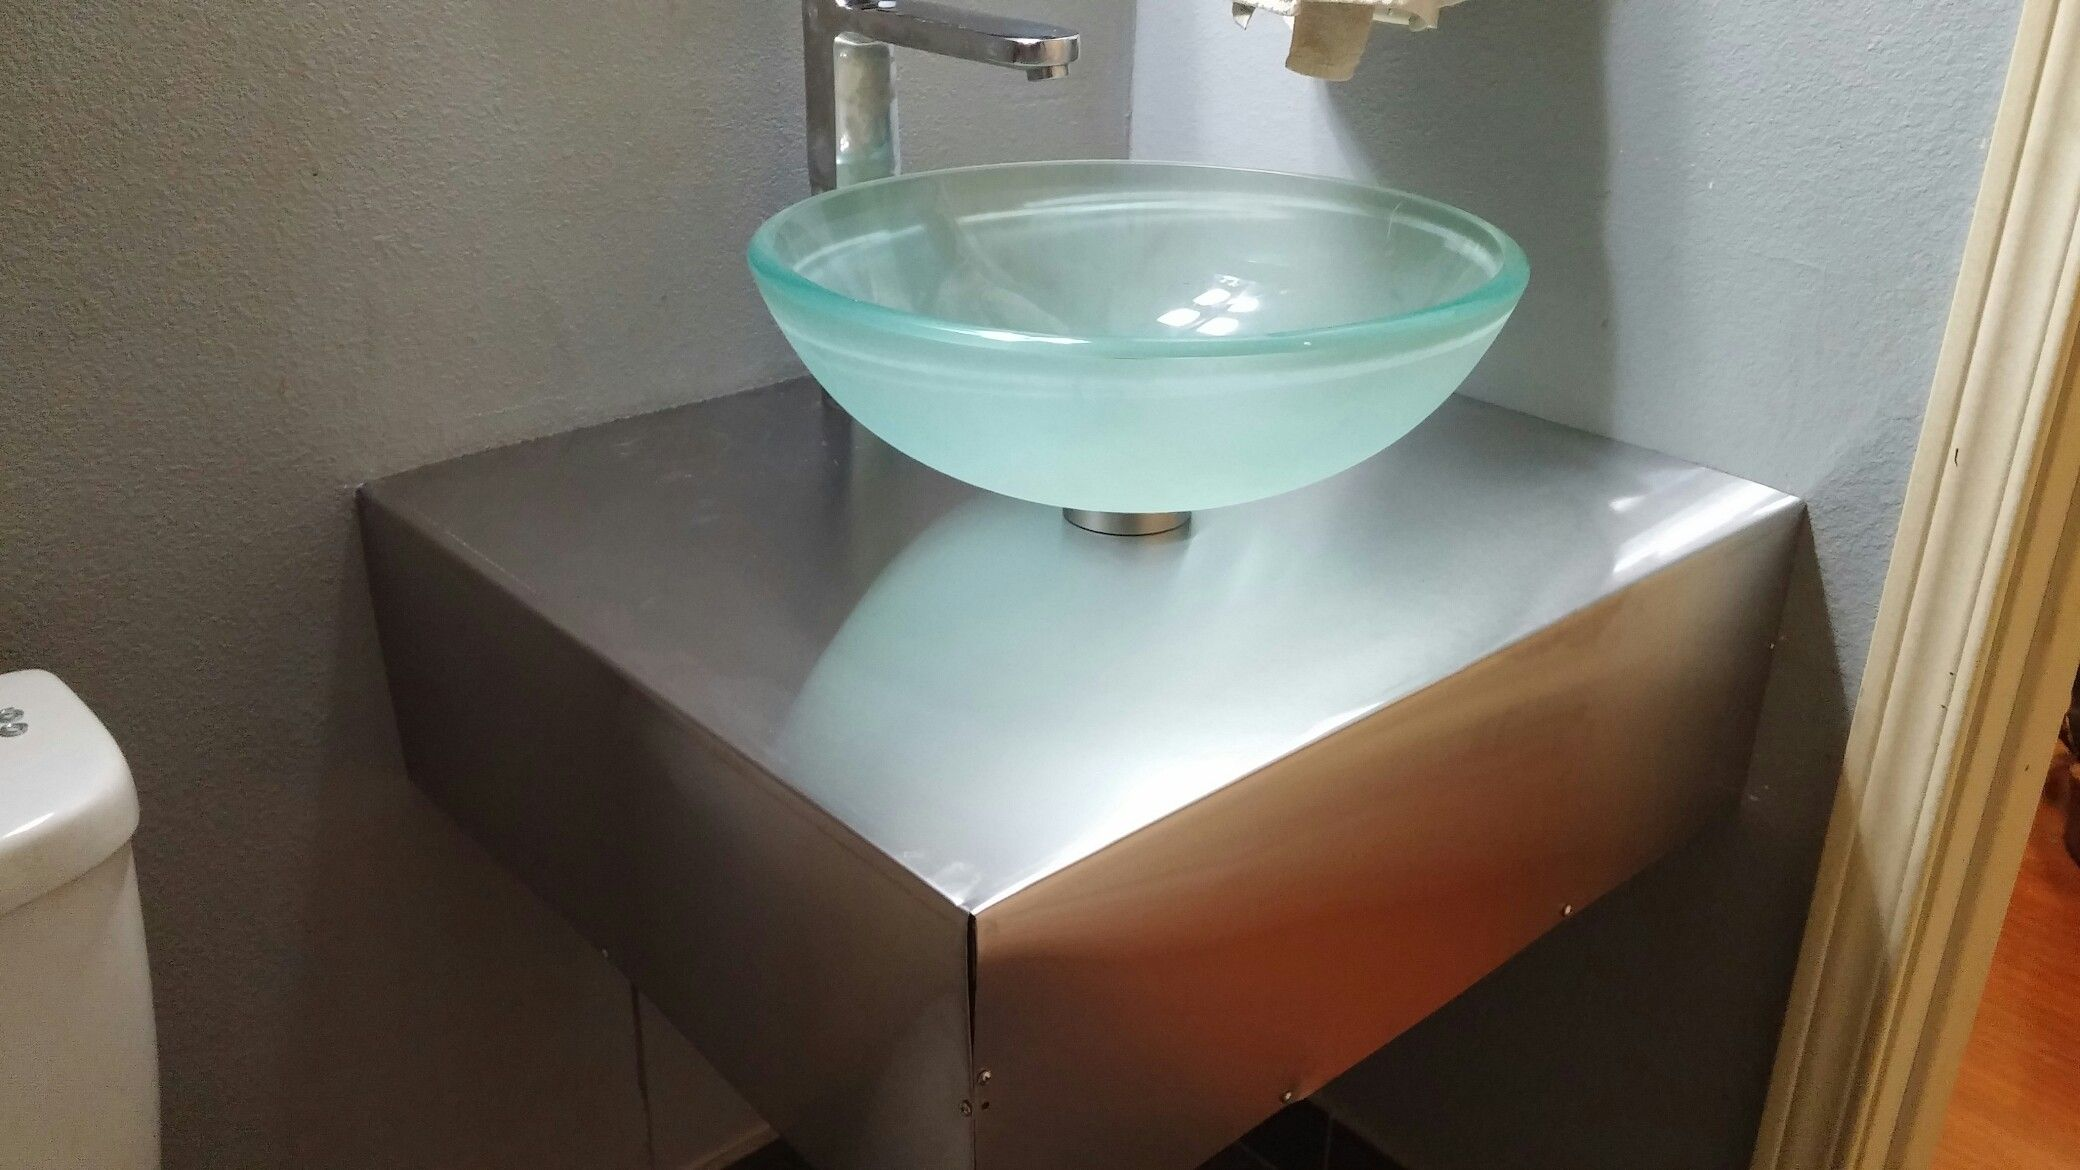 Pin by Bogdan on stainless steel floating bathroom vanity with glass ...